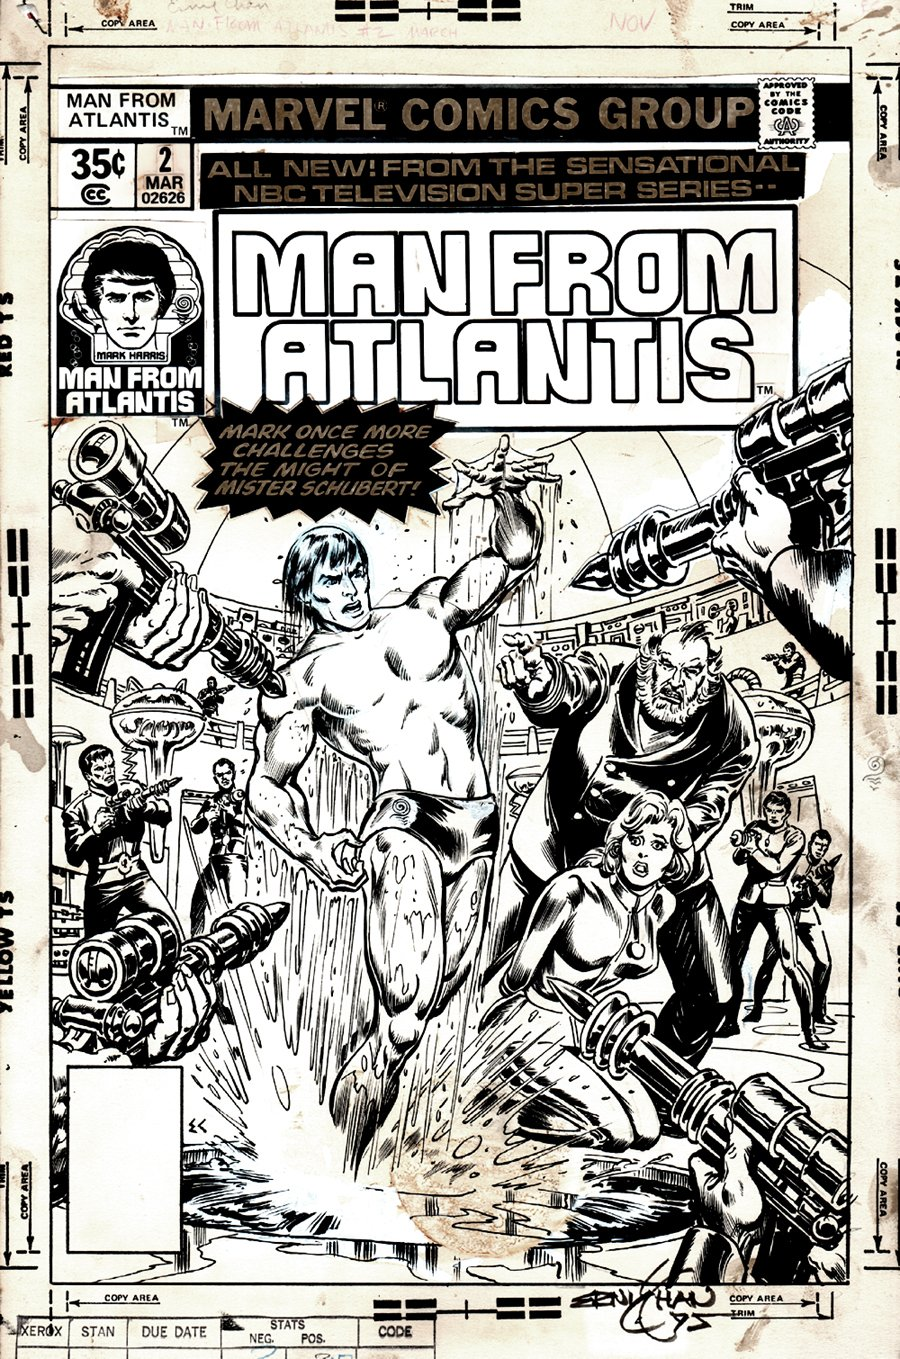 Man from Atlantis #2 Cover (1977)